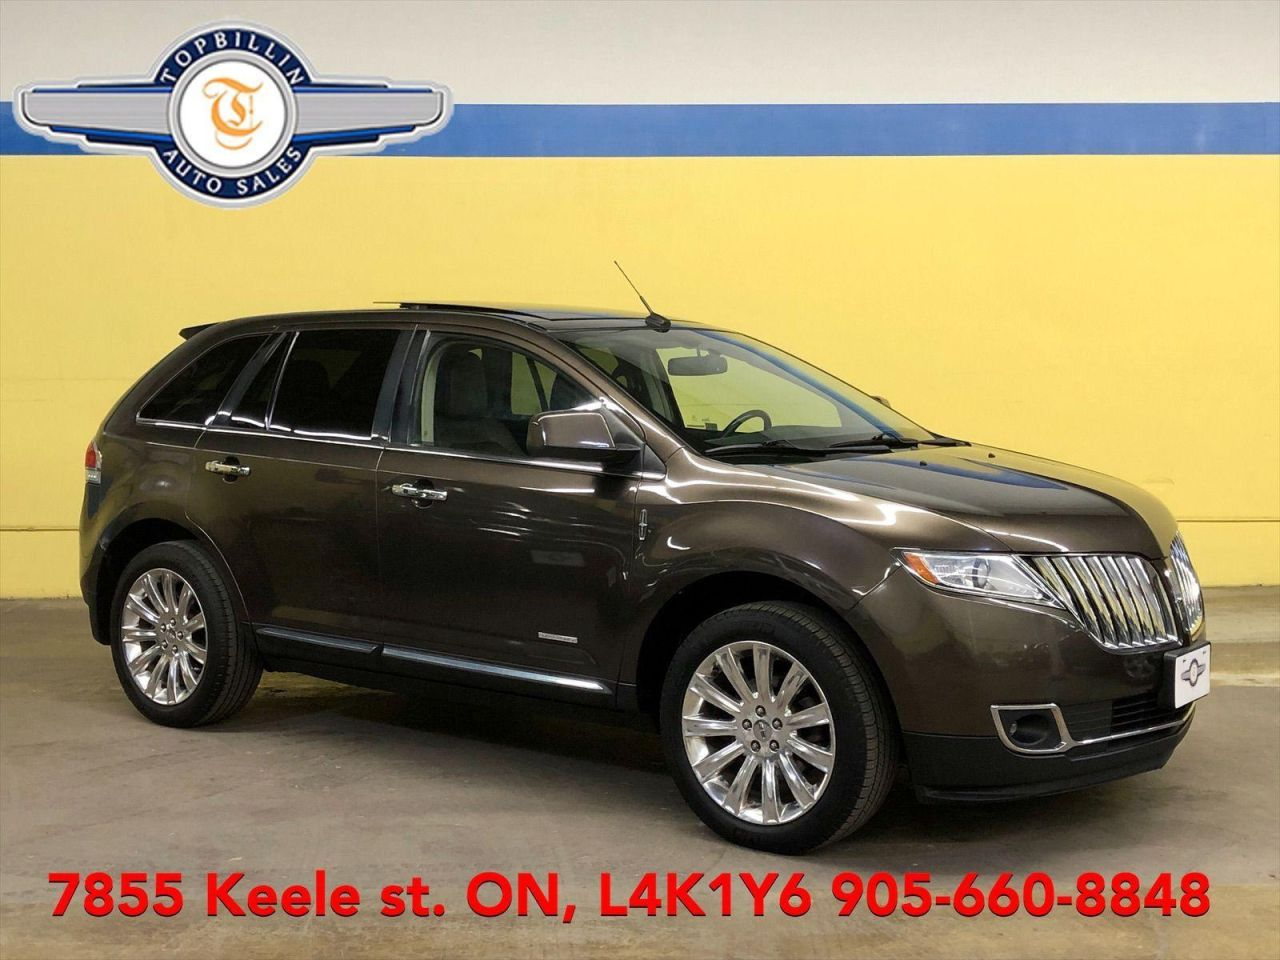 2011 Lincoln MKX Panoramic Roof, Navi, Leather, B-Cam & more